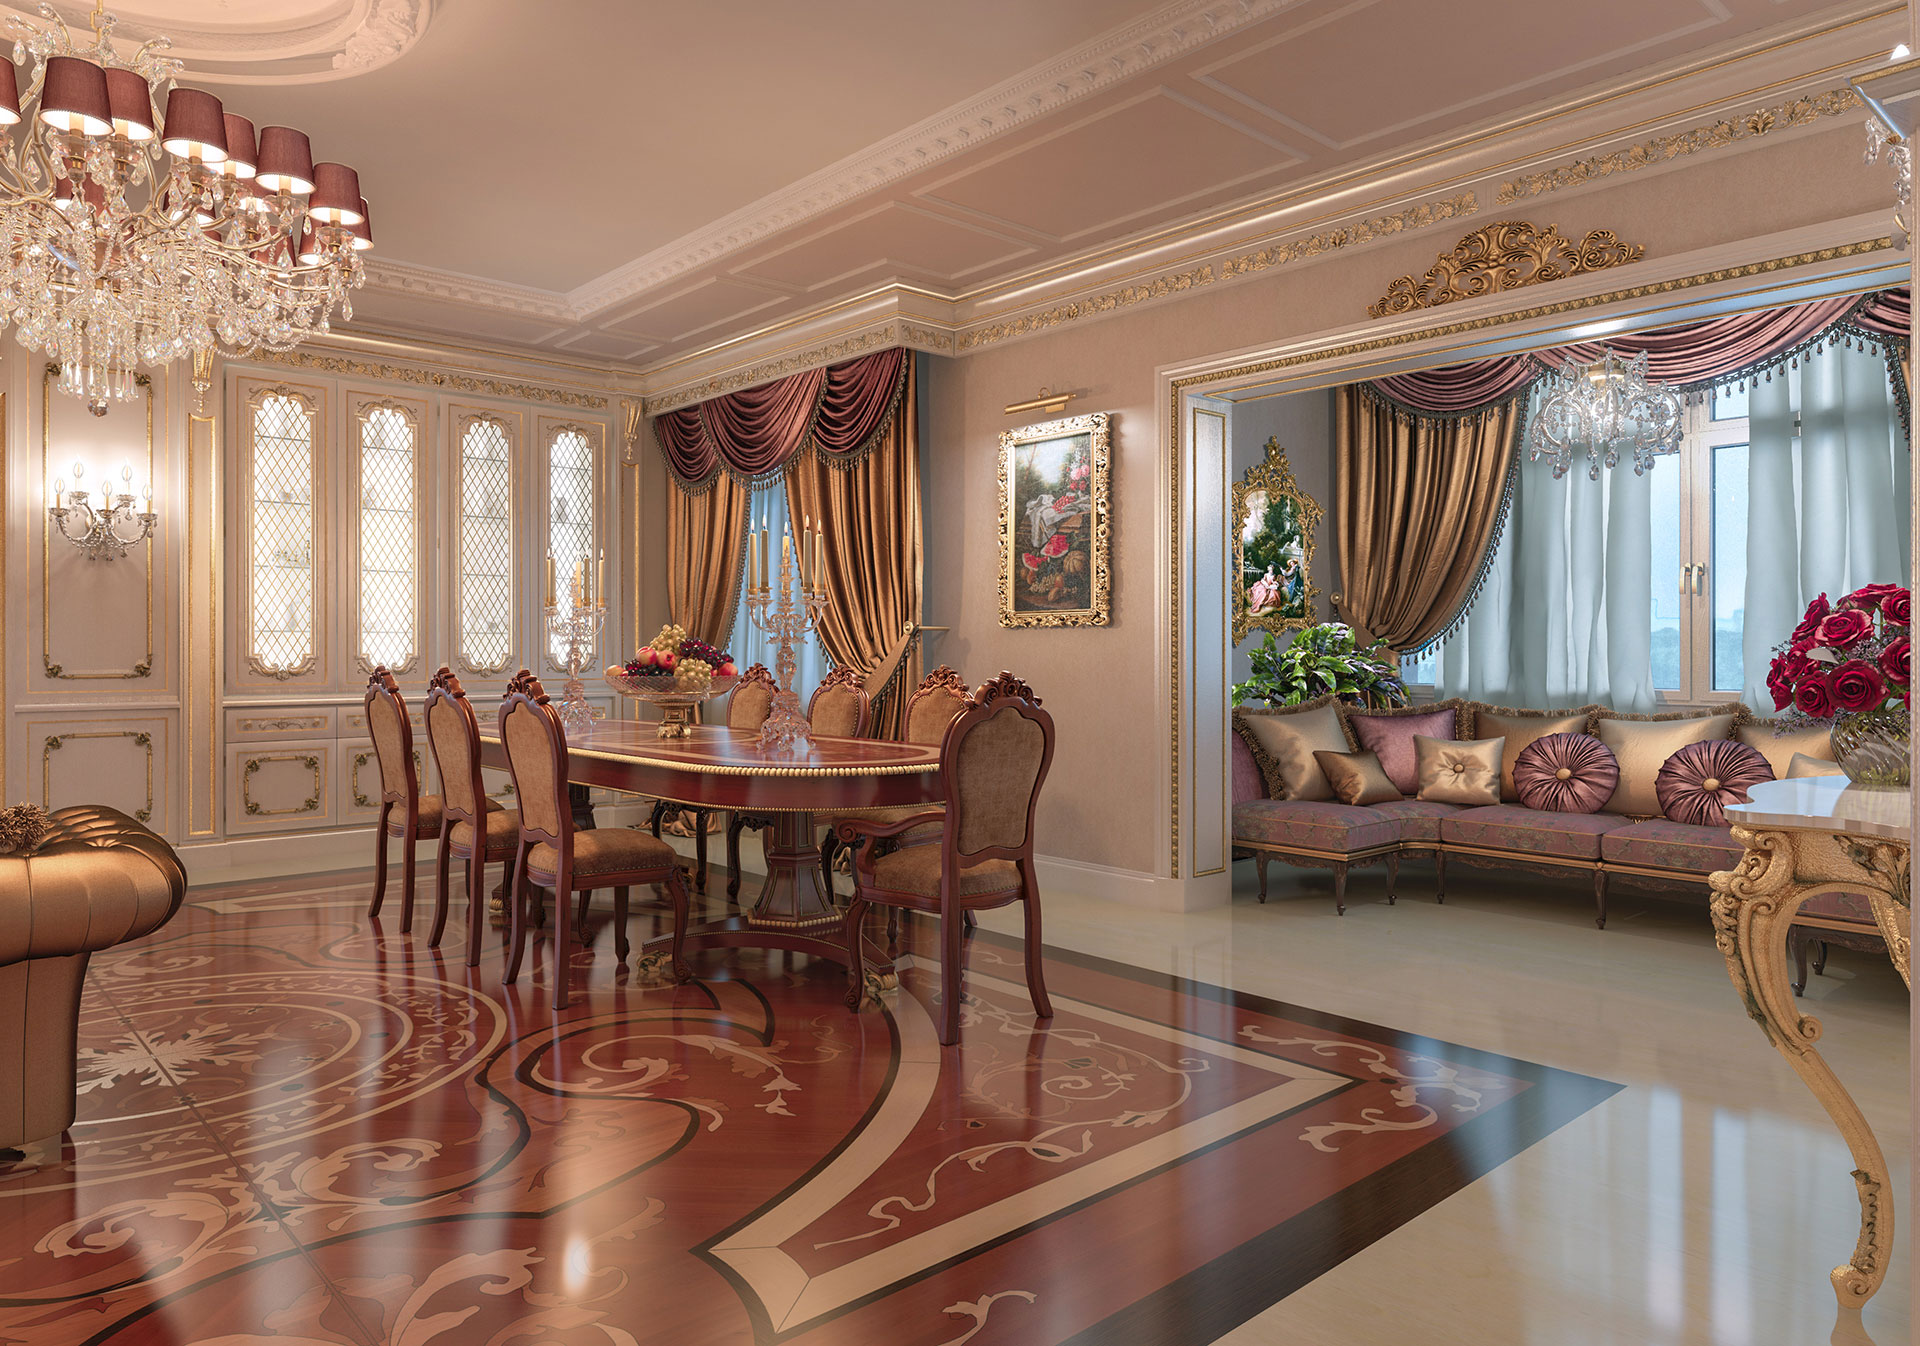 Faoma classic-style dining room